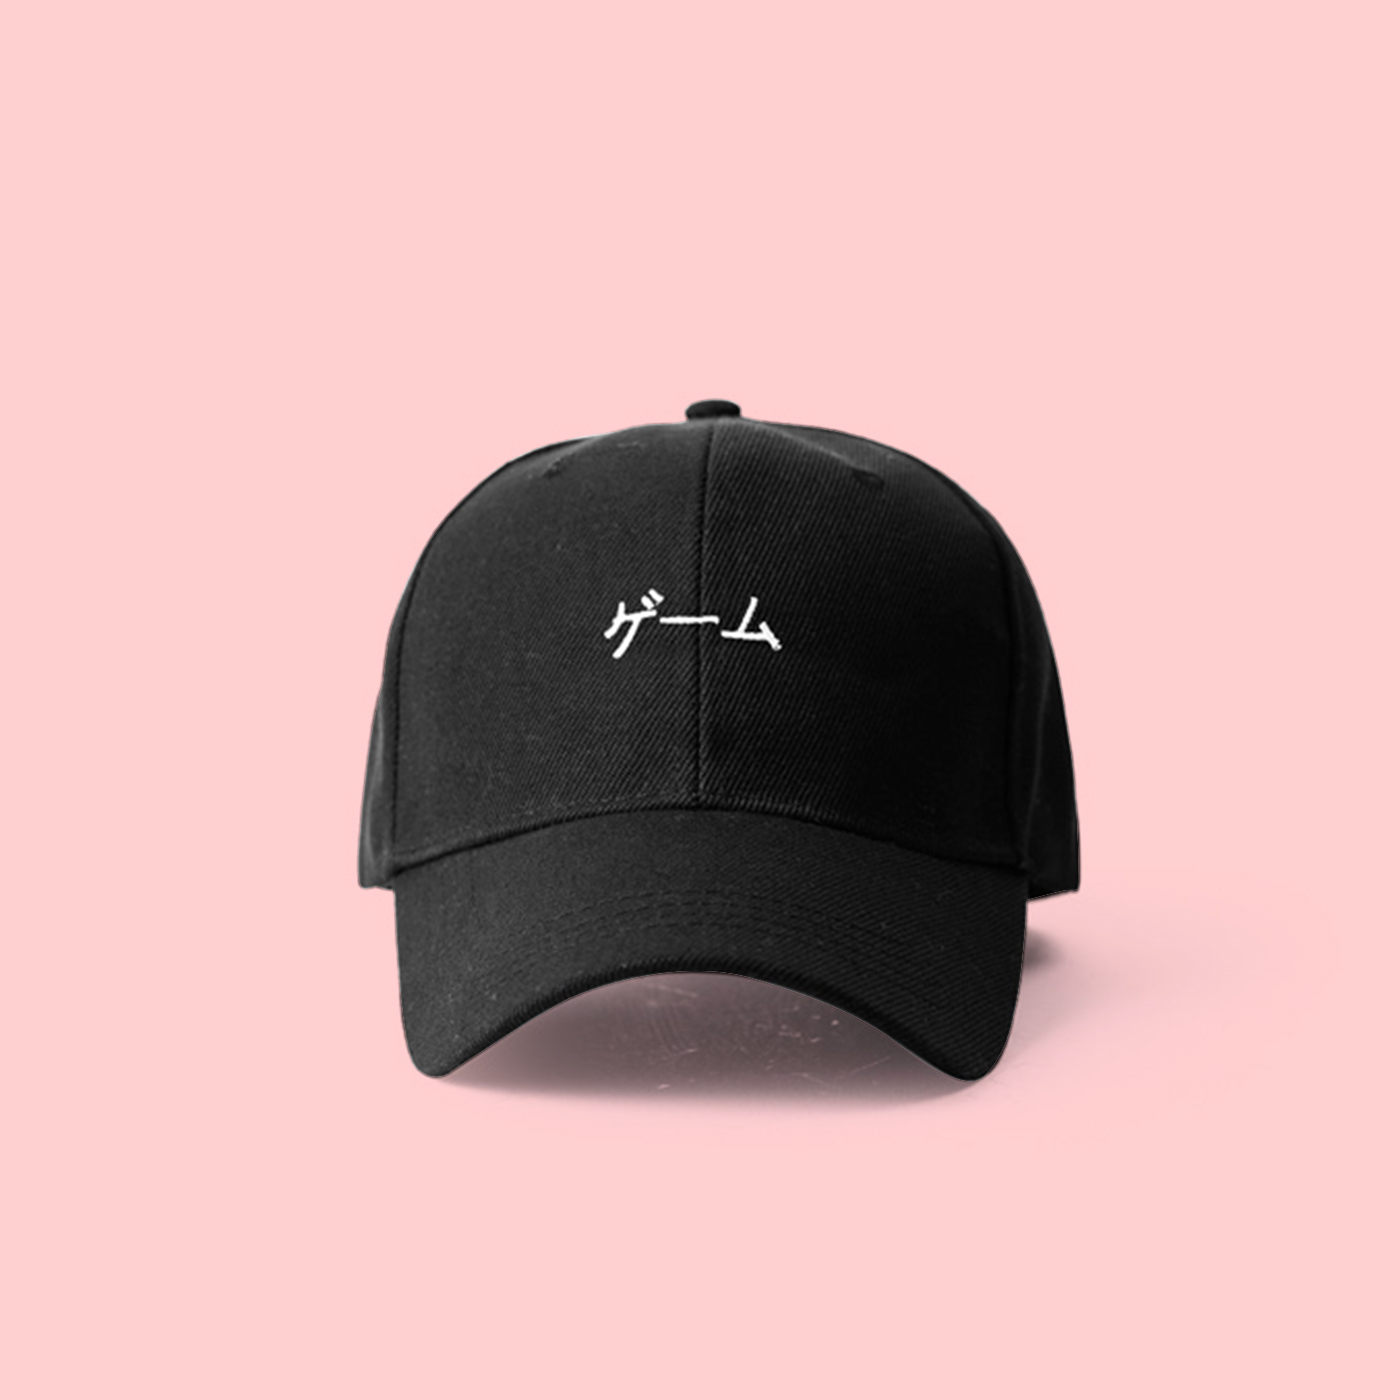 f1043e871a6 UNISEX STREETGOTH JAPANESE WORDING BASEBALL CAP IN BLACK · soldrelax ...